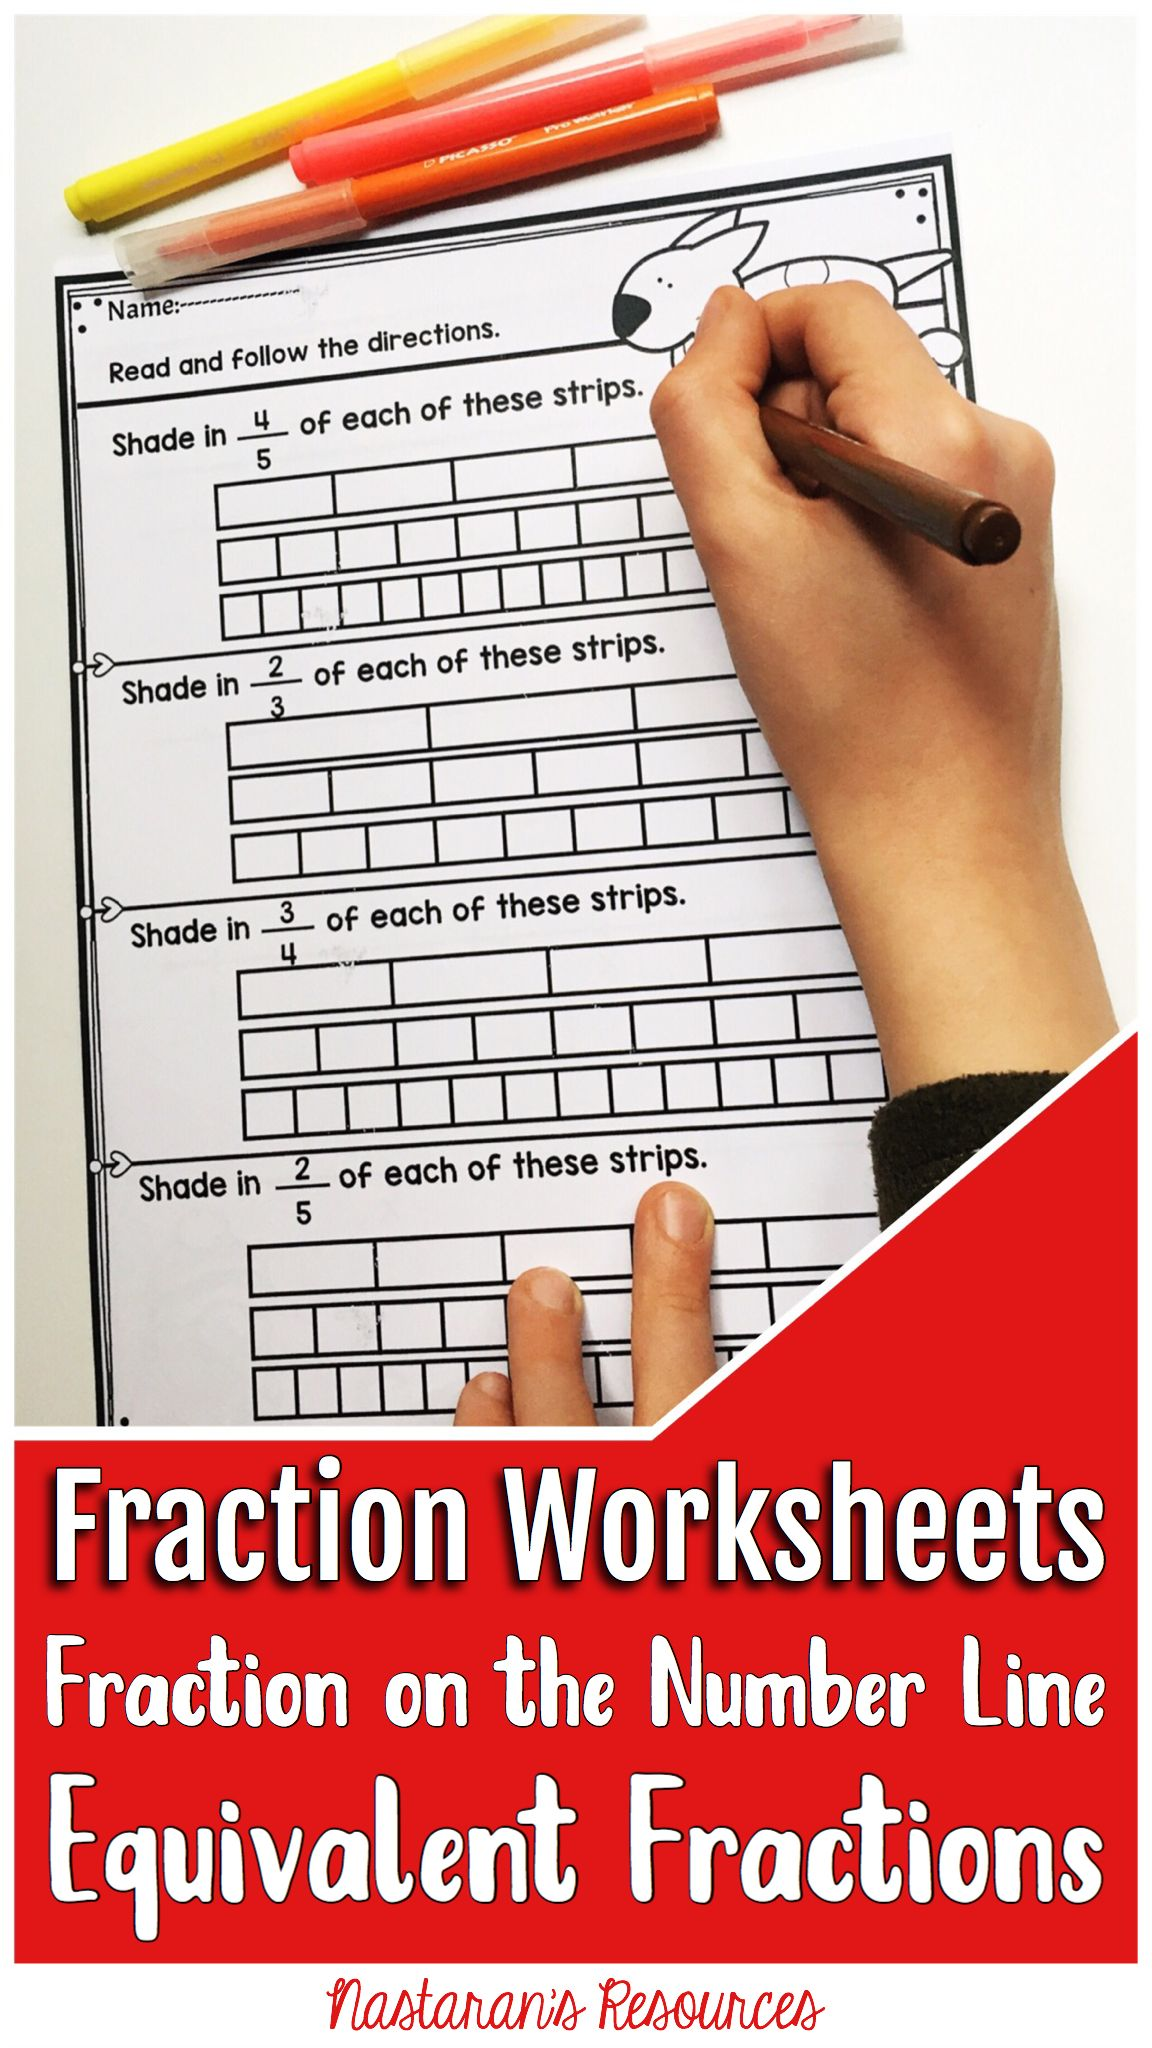 Fraction Worksheets Equal Non Equal Parts Fractions On The Number Line Equivalent Fractions Fractions Worksheets Equivalent Fractions Teaching Fractions [ 2048 x 1152 Pixel ]